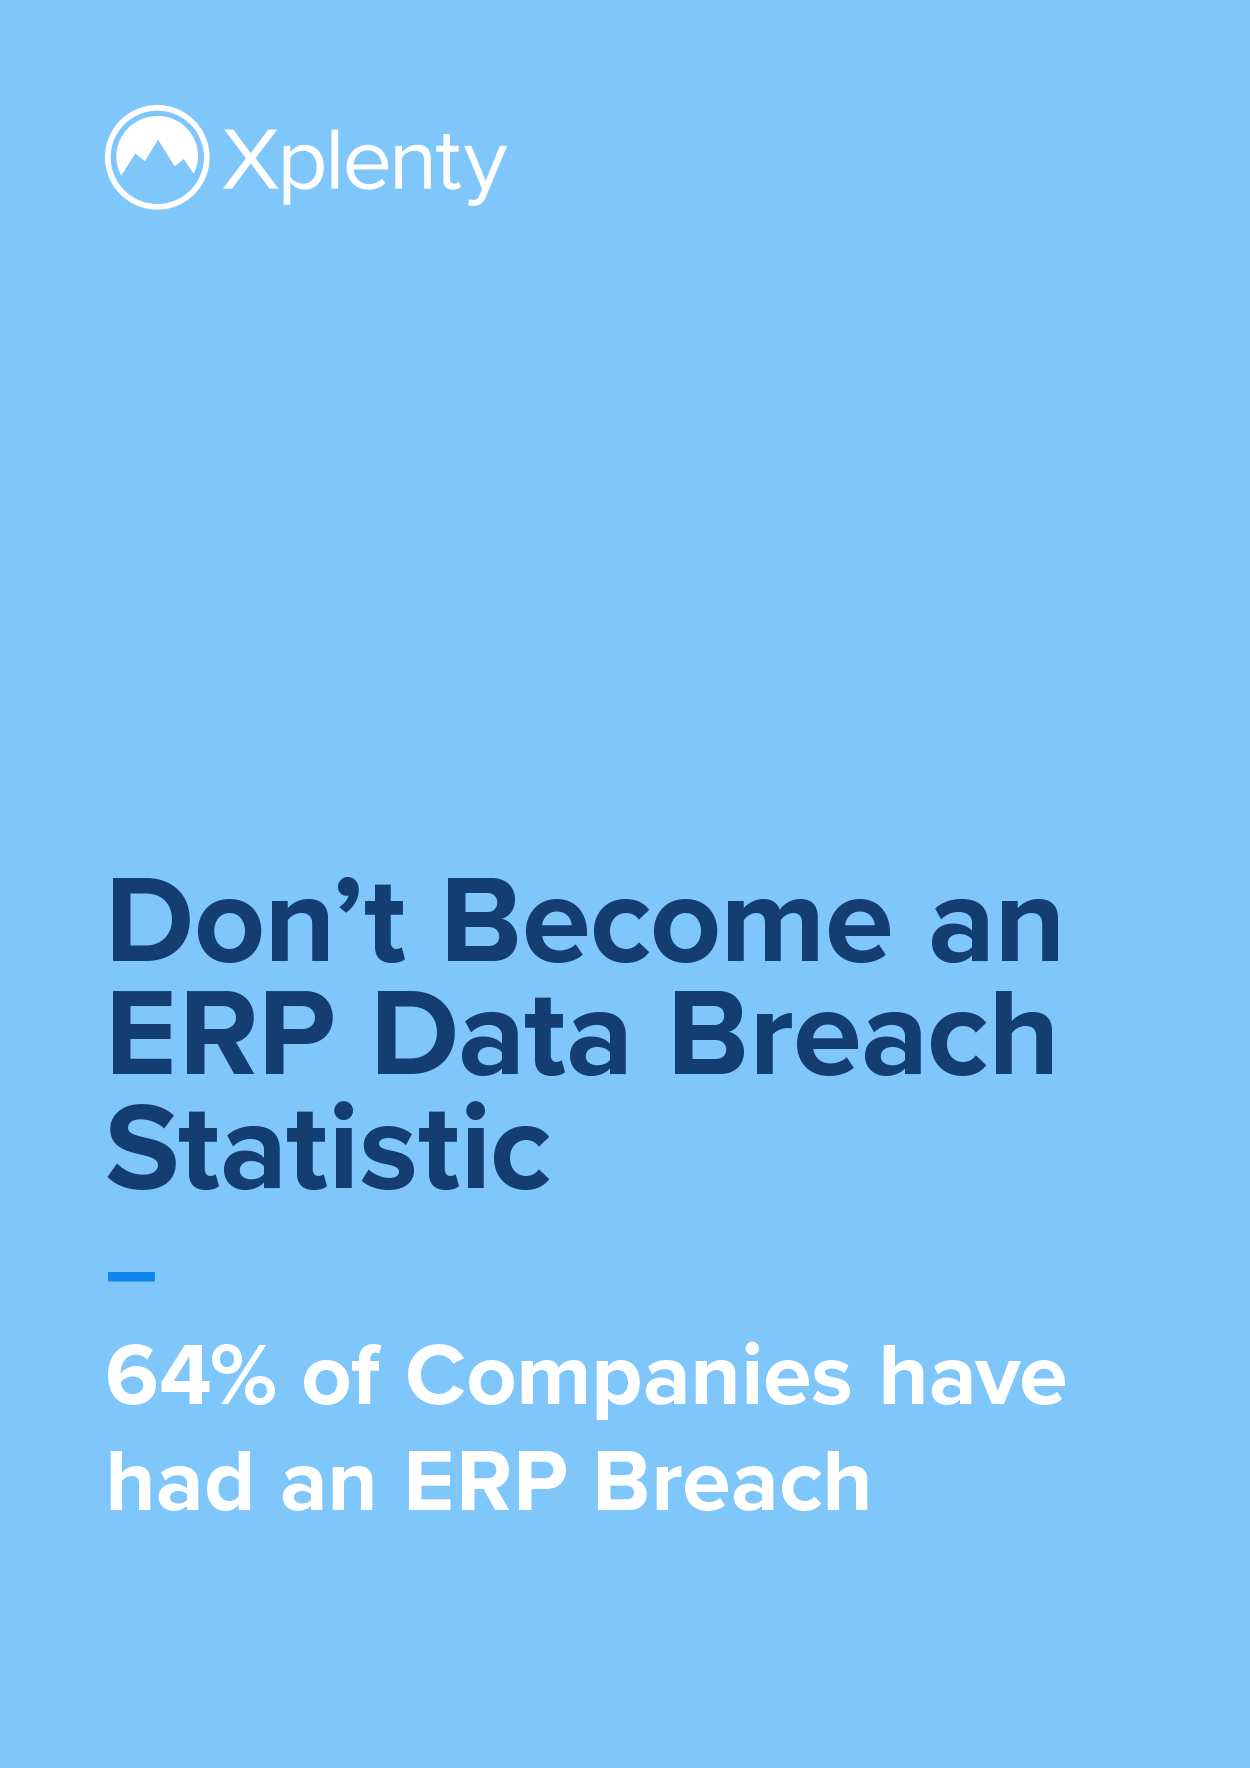 Don't Become an ERP Data Breach Statistic